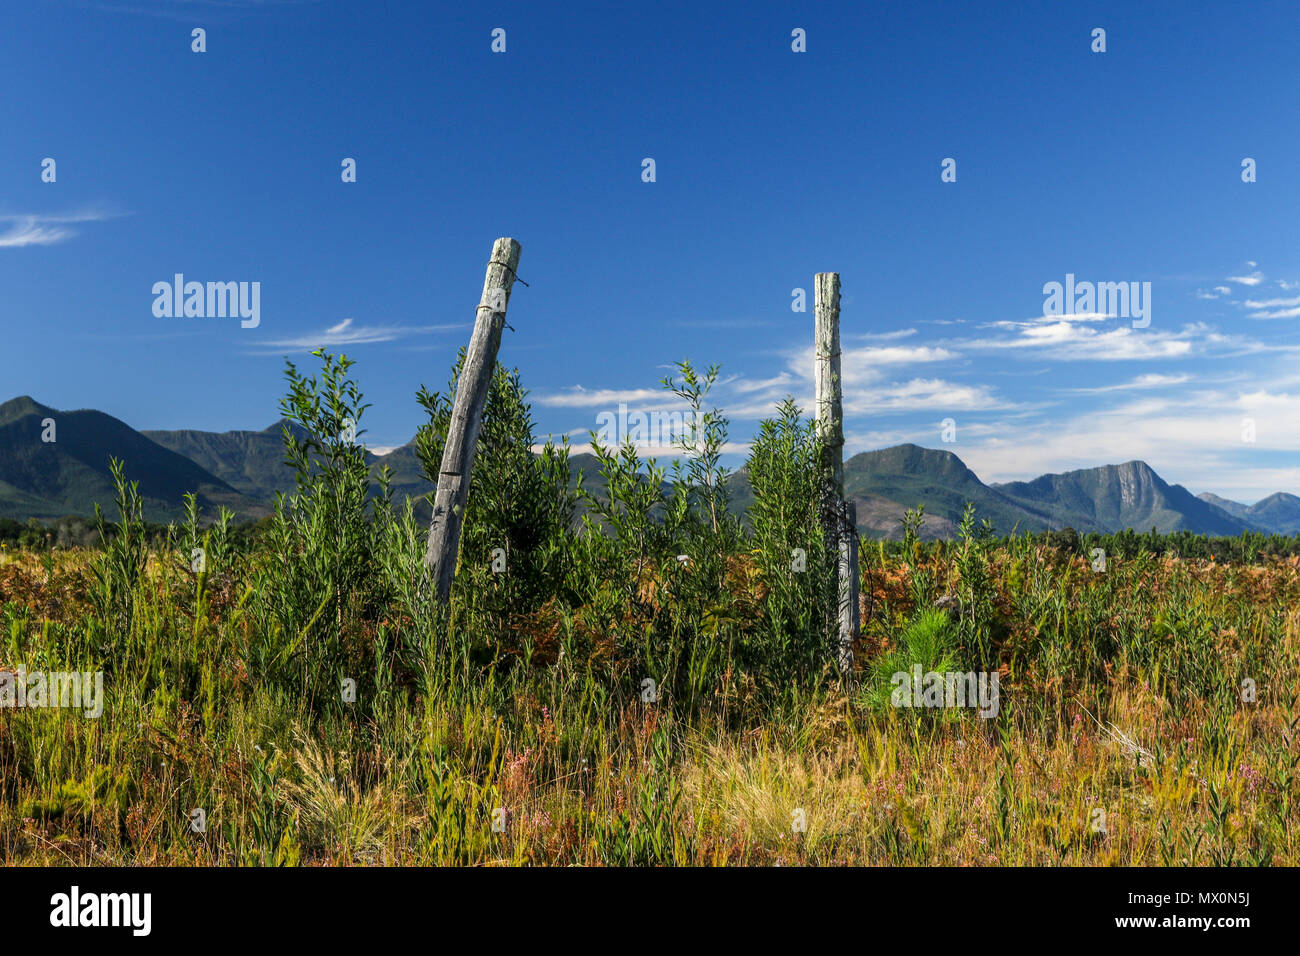 Fencepost and fynbos landscape on the road to Coldstream, Tsitsikamma, protected area, Garden Route, Cape, South Africa, - Stock Image